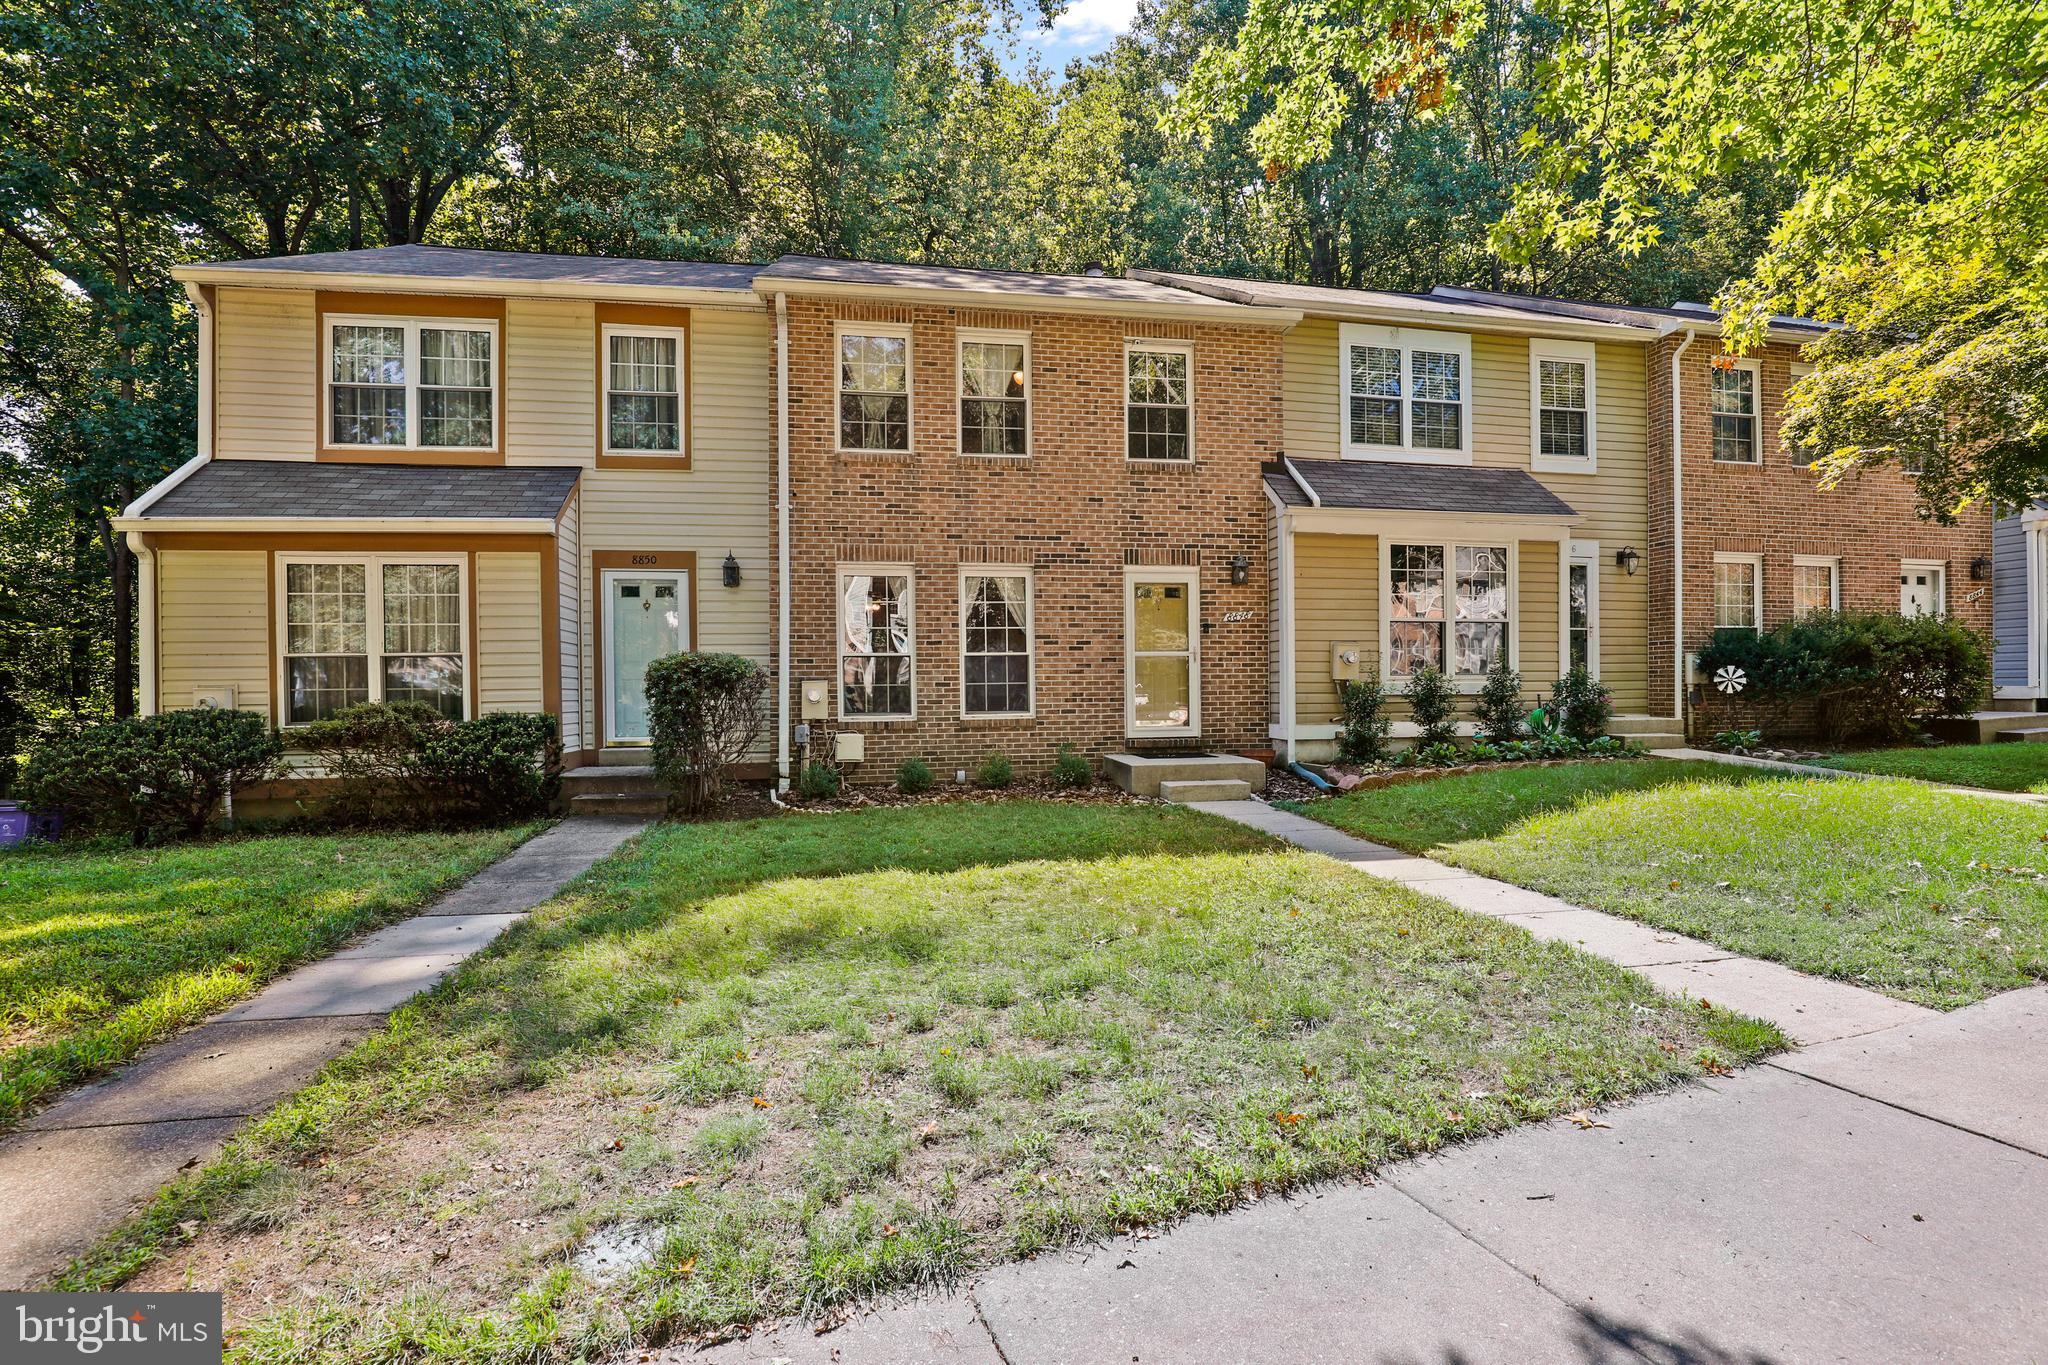 Welcome to your new home! This beautiful townhome is just what you've been looking for. The open-con